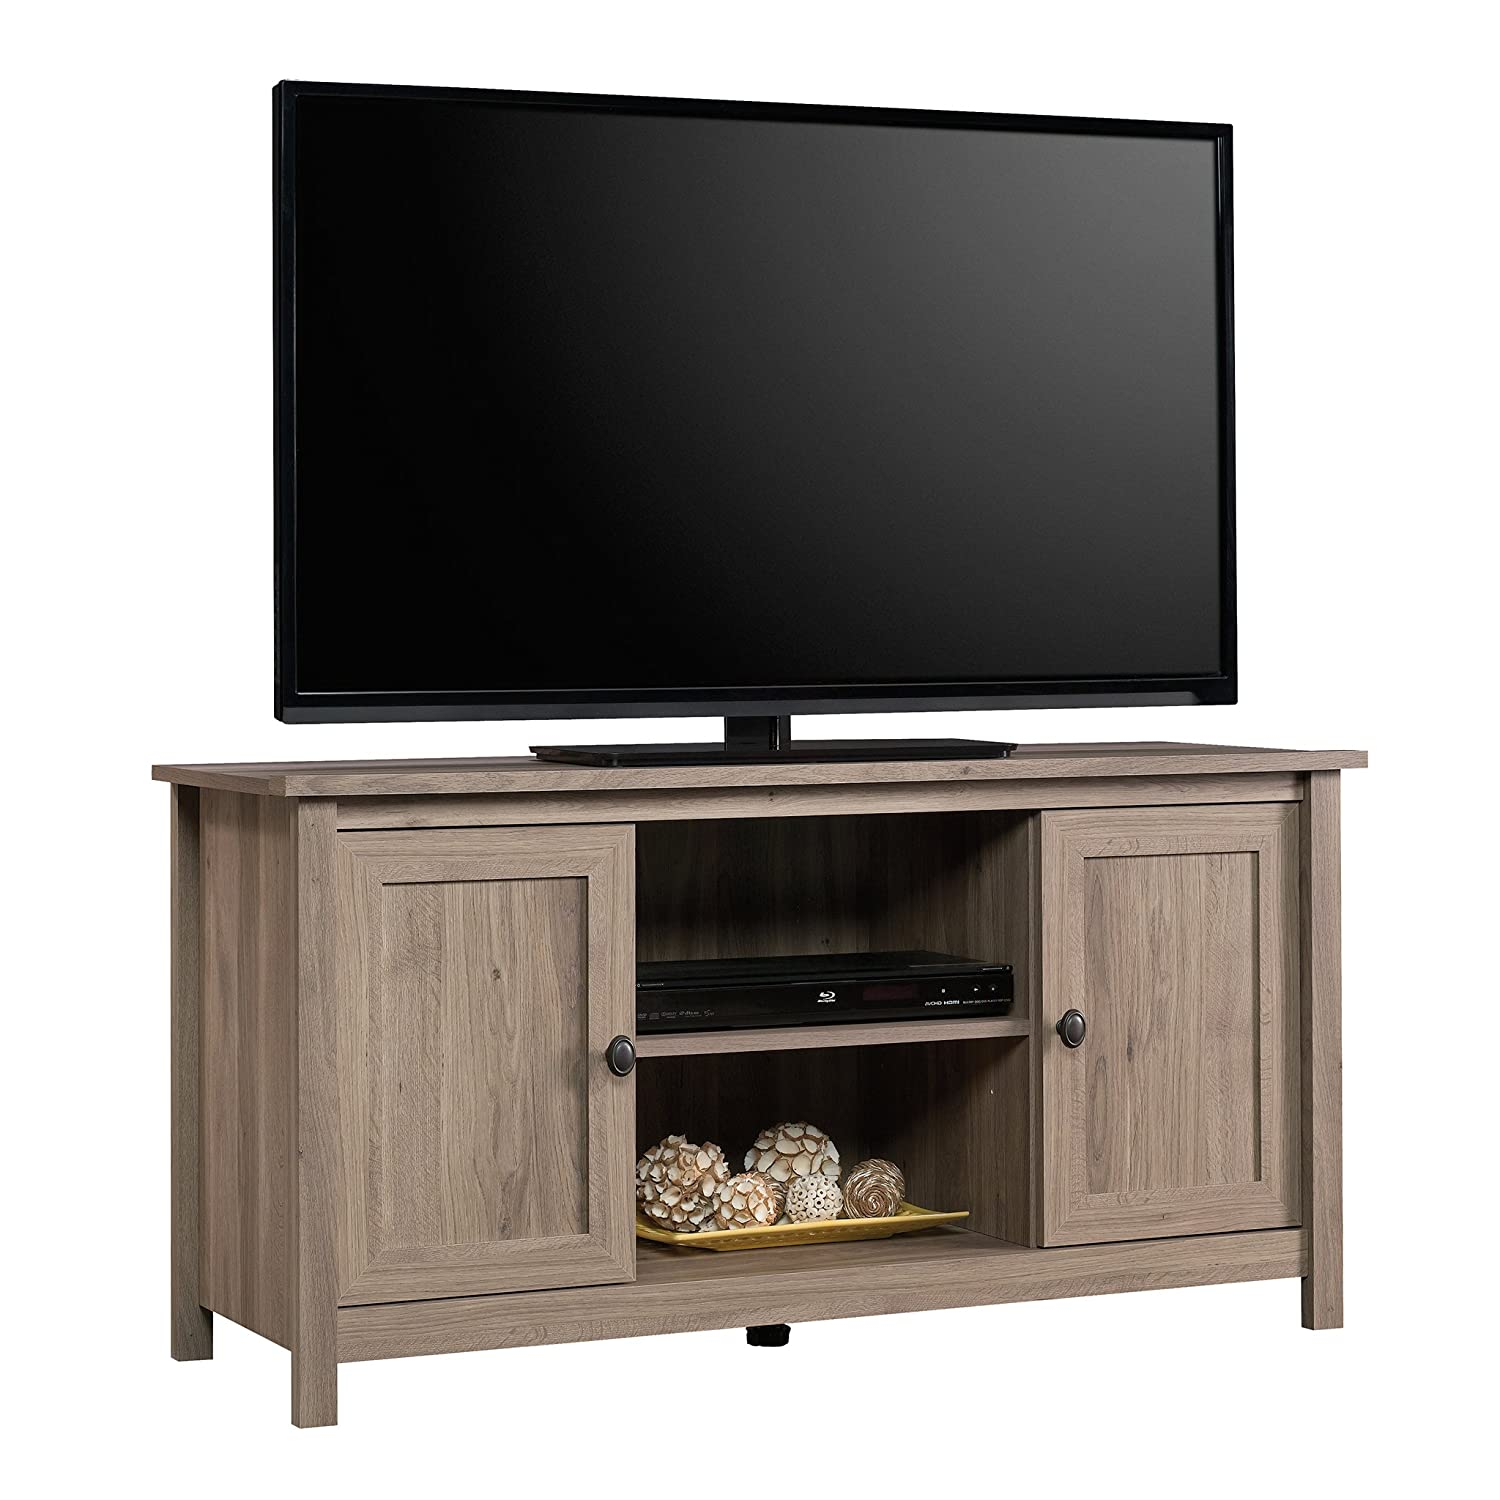 Sauder County Line Panel TV Stand, For TVs up to 47 , Salt Oak finish